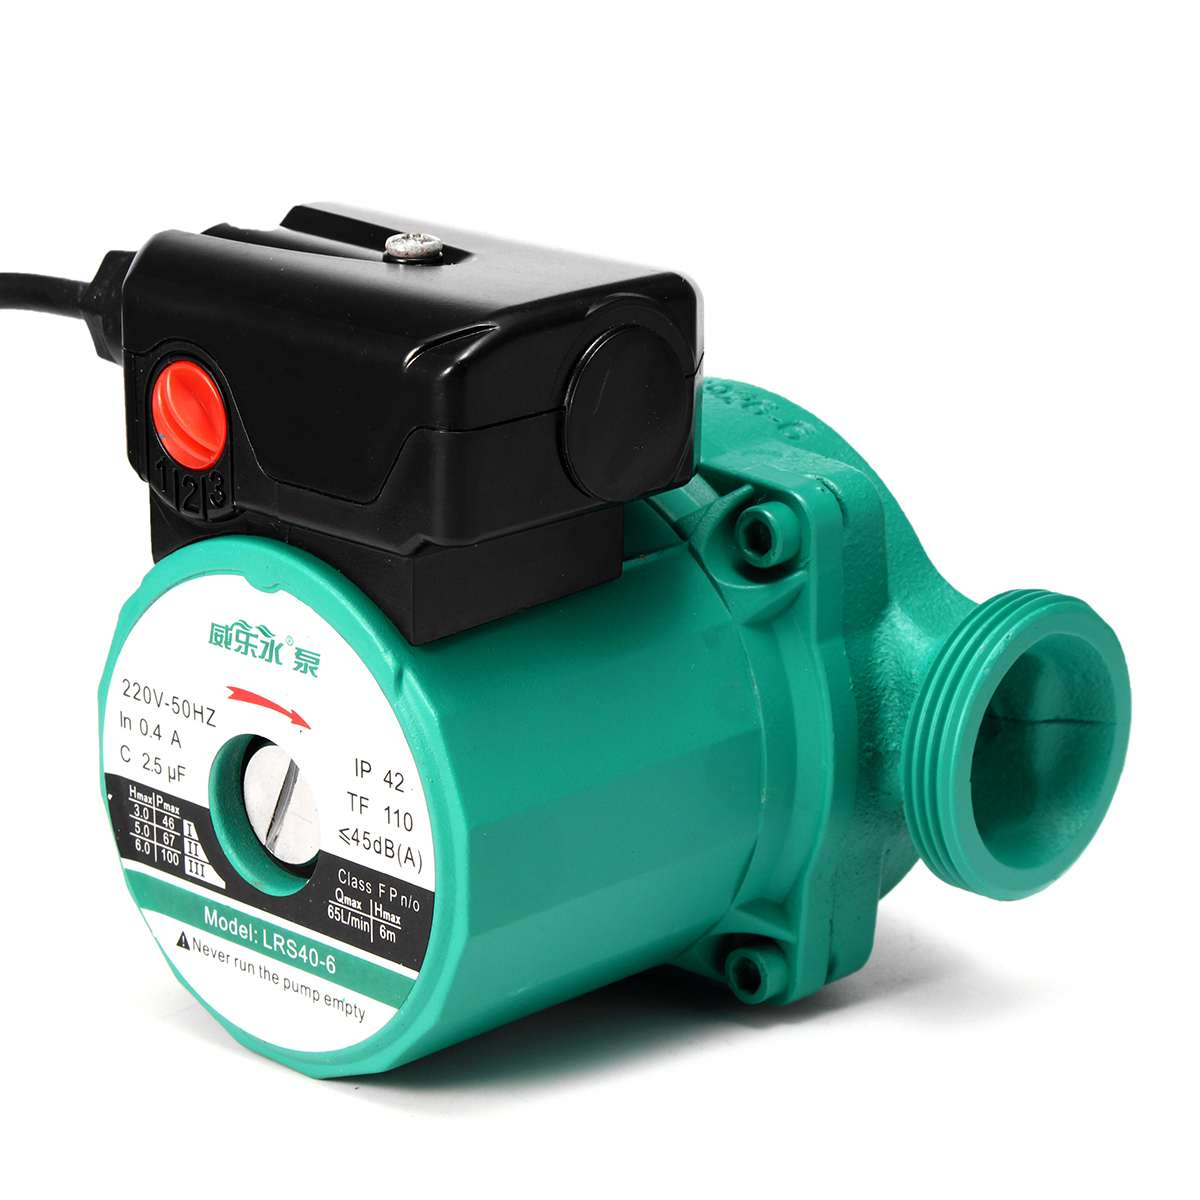 220V 100W Indoor Hot Water Air Heating Circulator Boiler Pump Switch Heating System Circulation Pumps Accessories